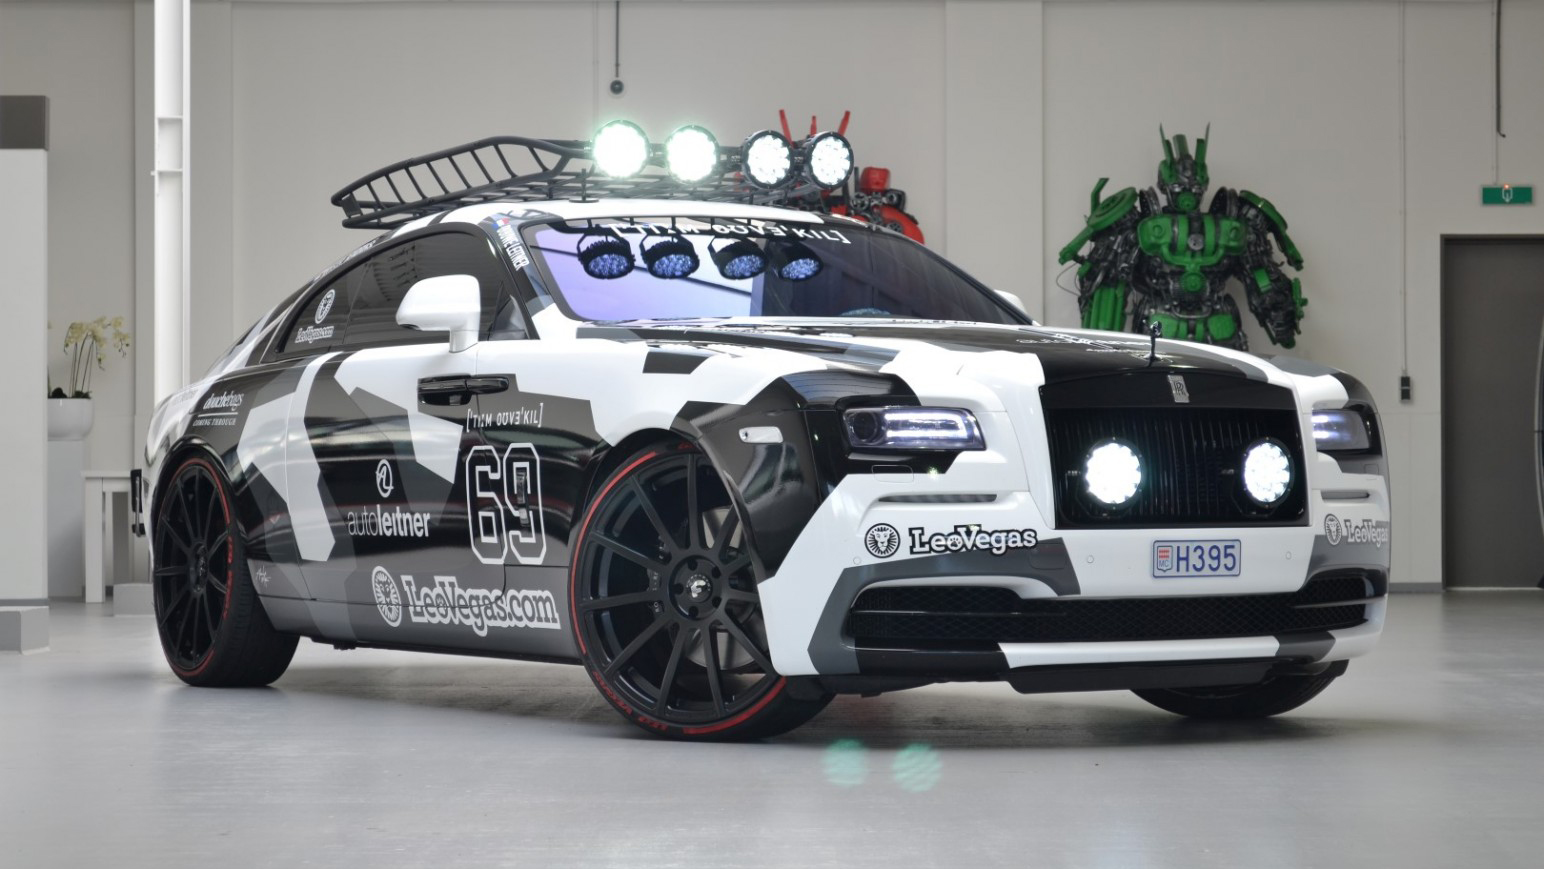 jon olsson 39 s modified 810bhp rolls royce wraith is up for sale top gear. Black Bedroom Furniture Sets. Home Design Ideas